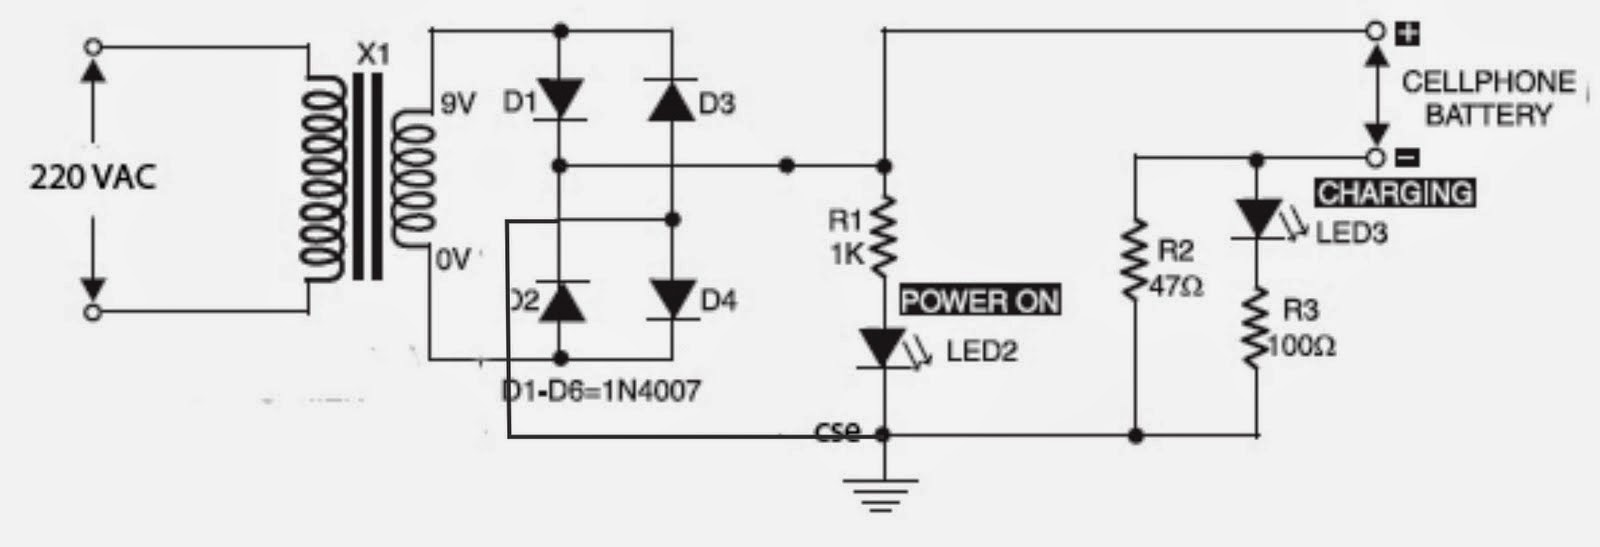 Mobile Phone Battery Schematic Diagram Circuit Diagram